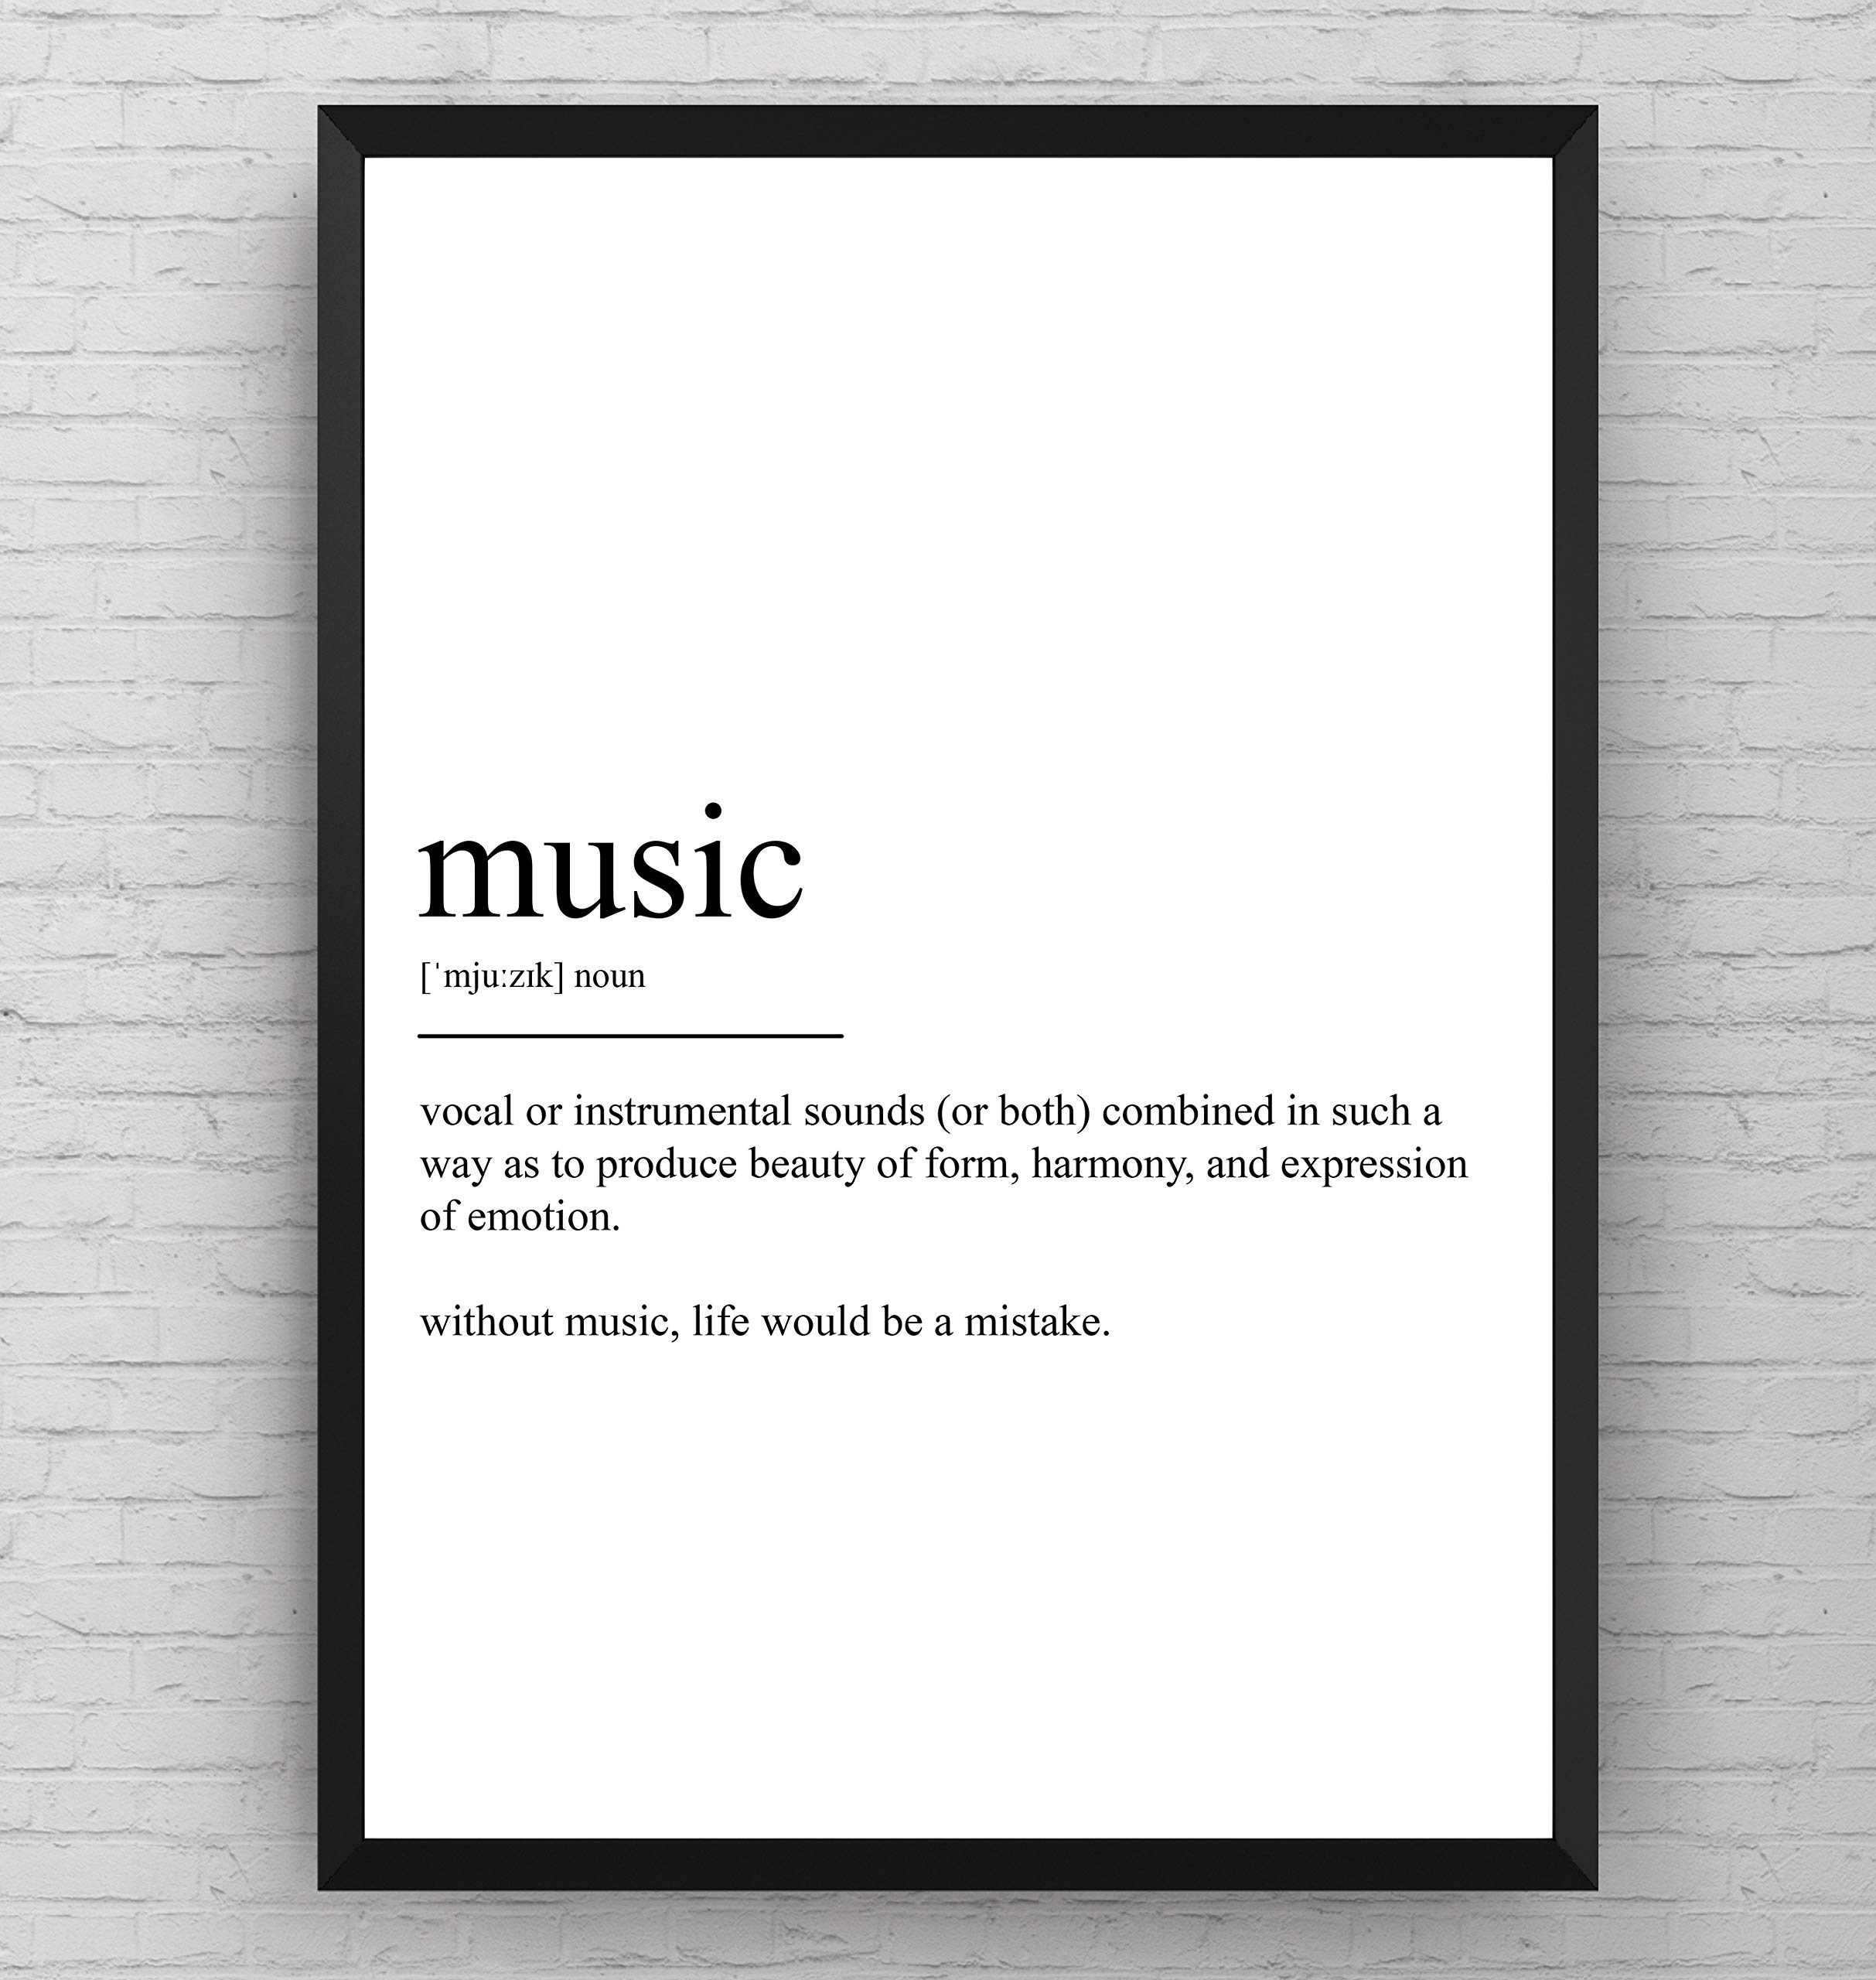 Music Definition Print Lover Poster Best Gift Presents Teacher Wall Art Student Typography Quote Home Room Decor – Frame Not Included